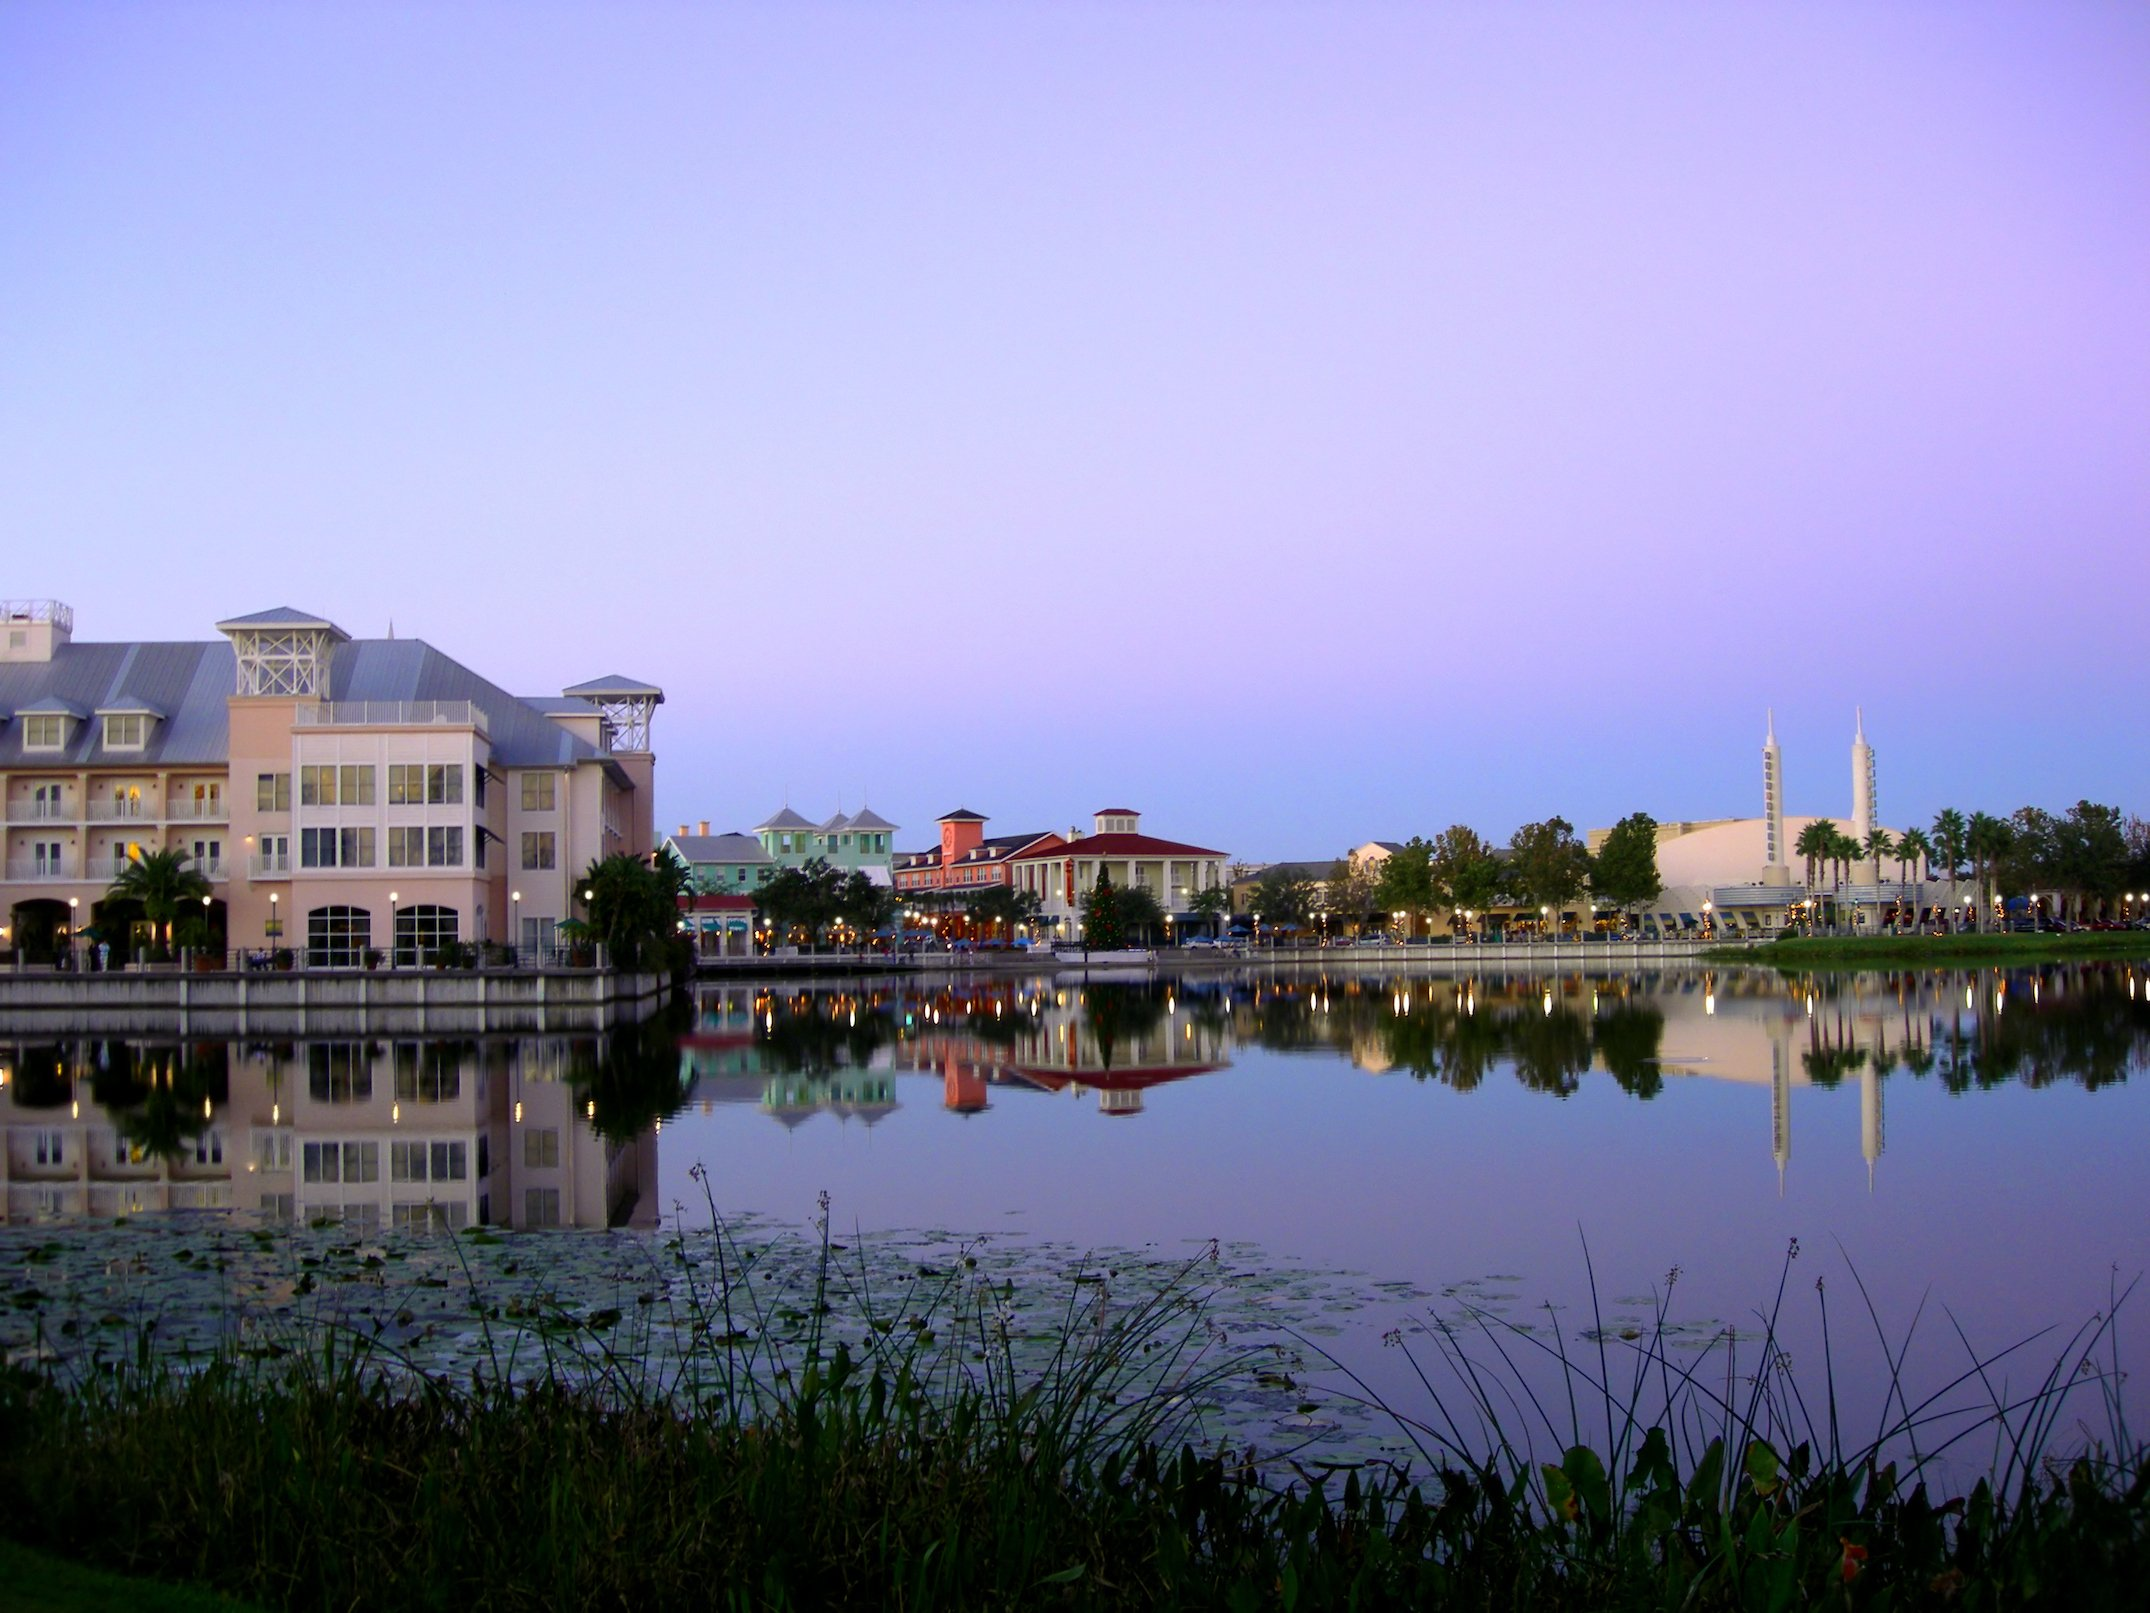 Celebration Florida at Dusk